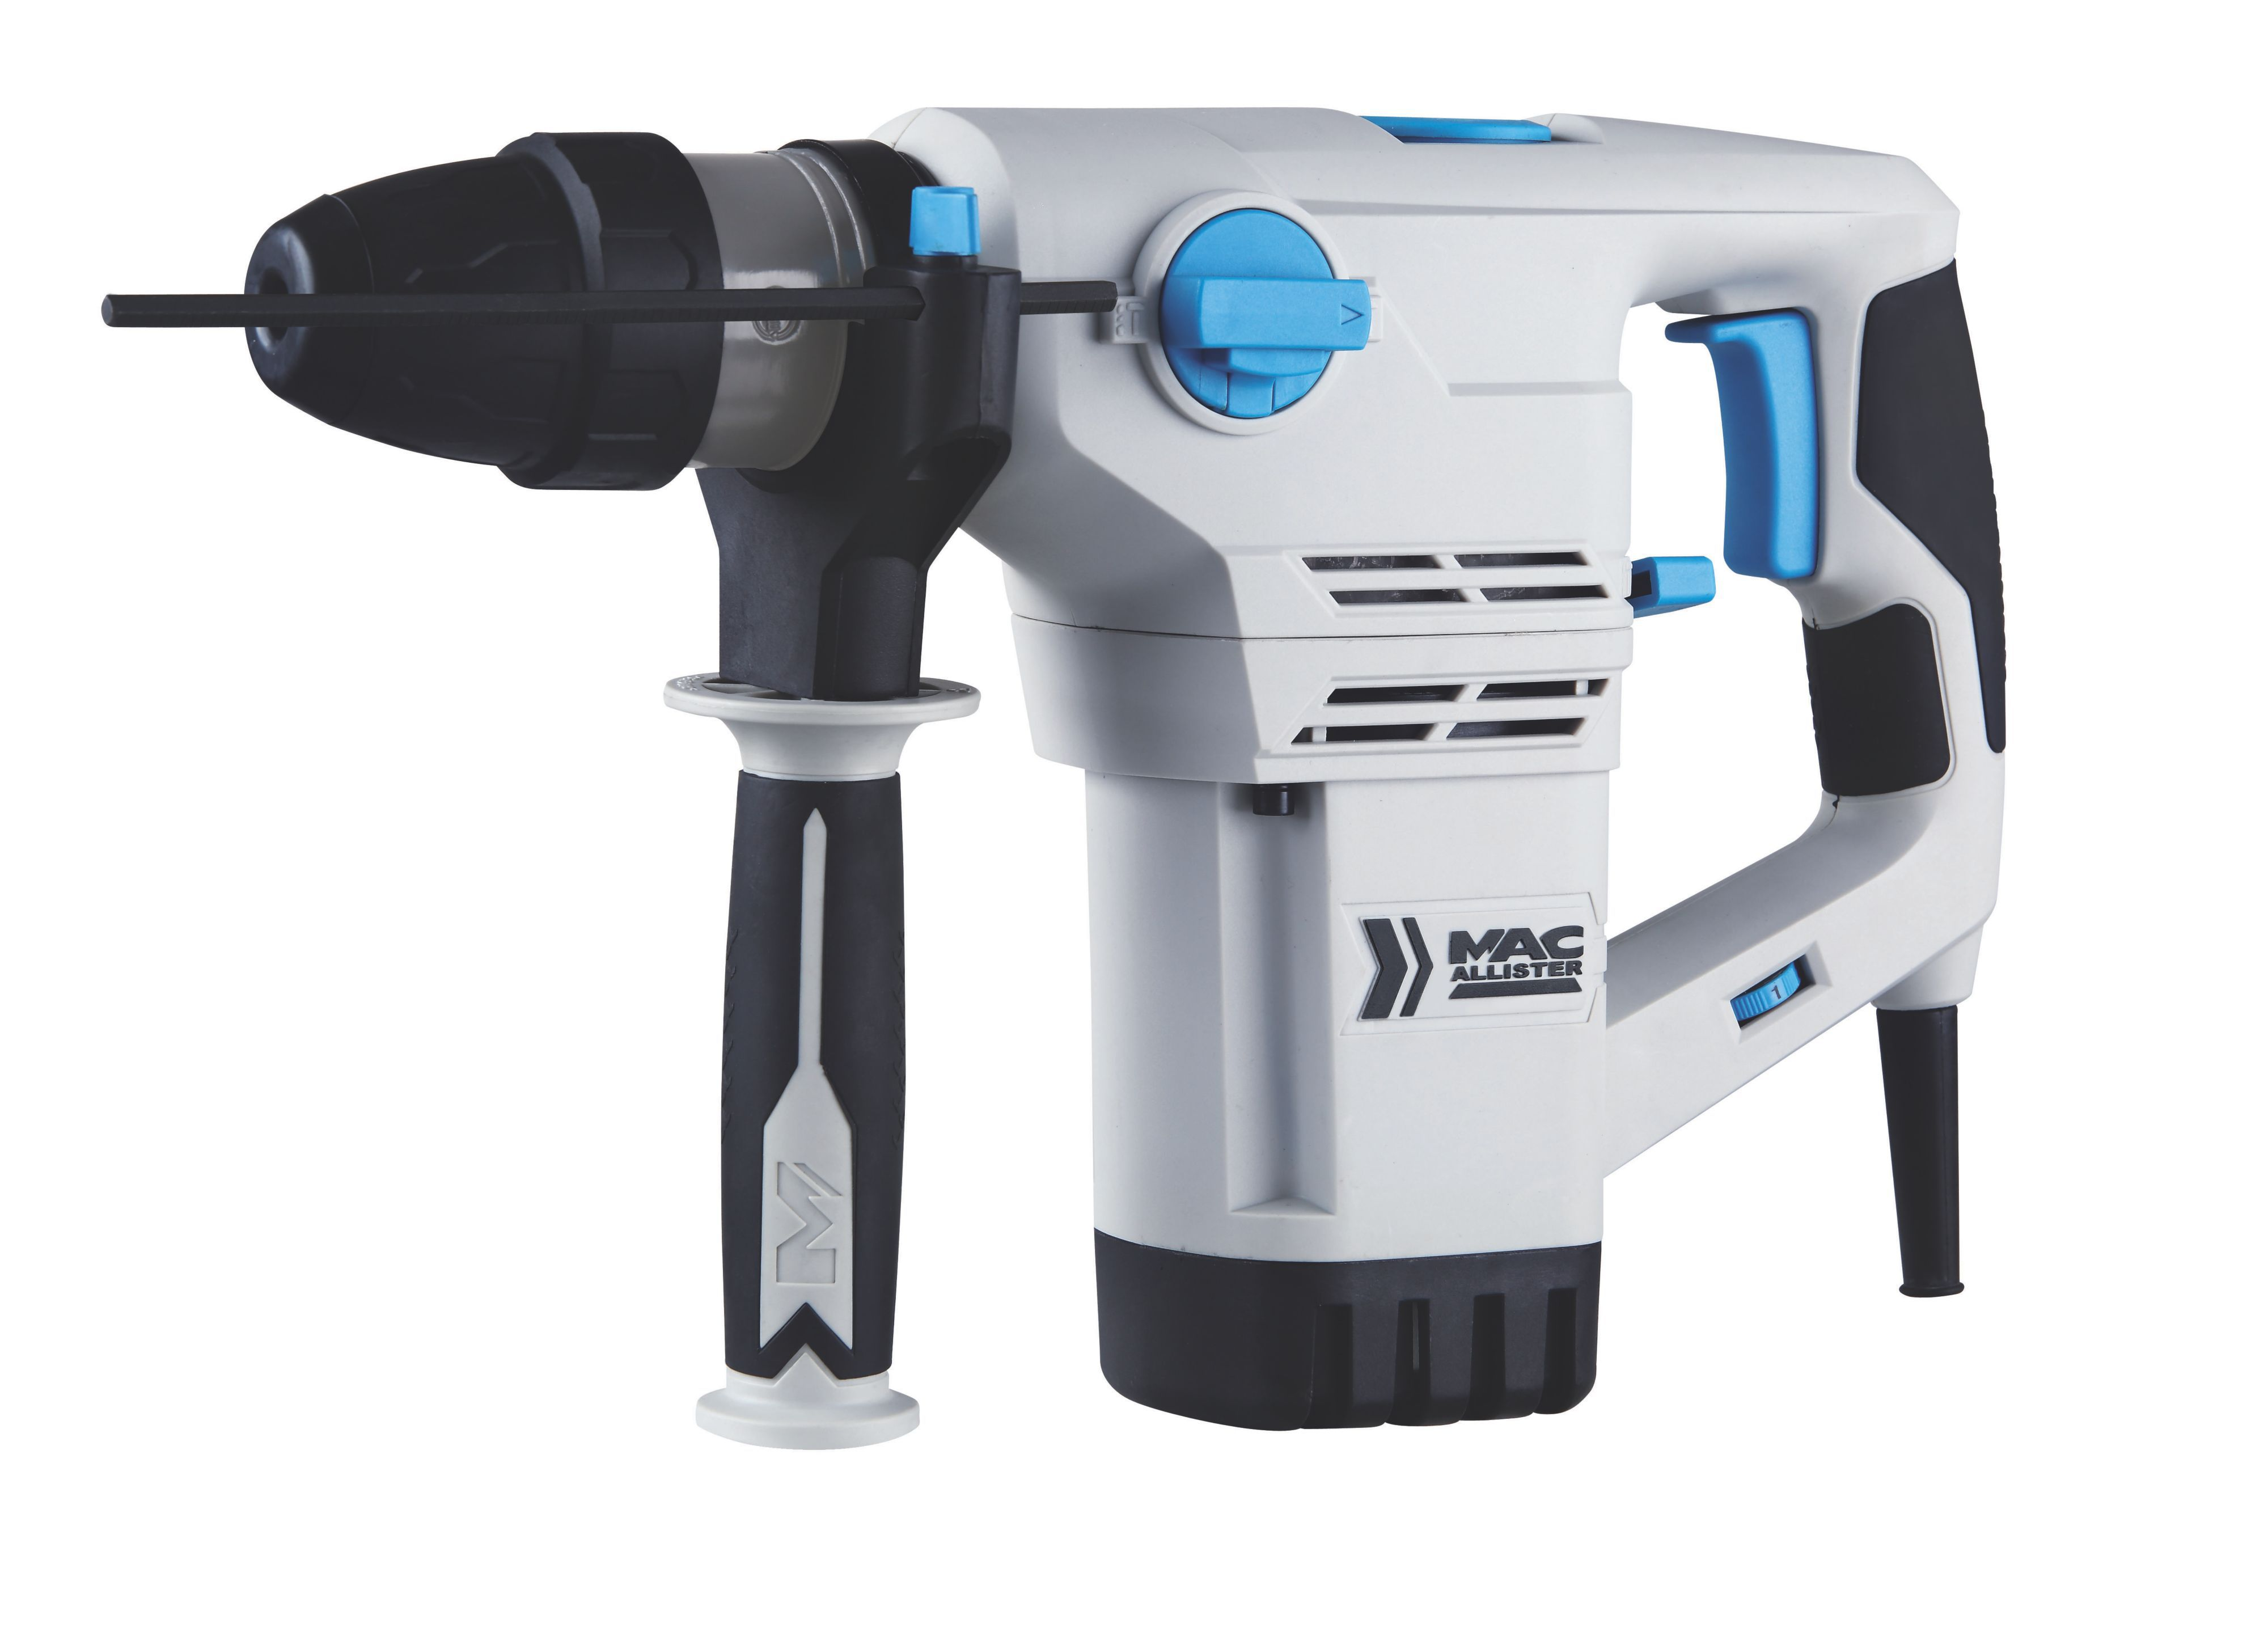 mac allister 1200w corded sds plus rotary hammer drill. Black Bedroom Furniture Sets. Home Design Ideas